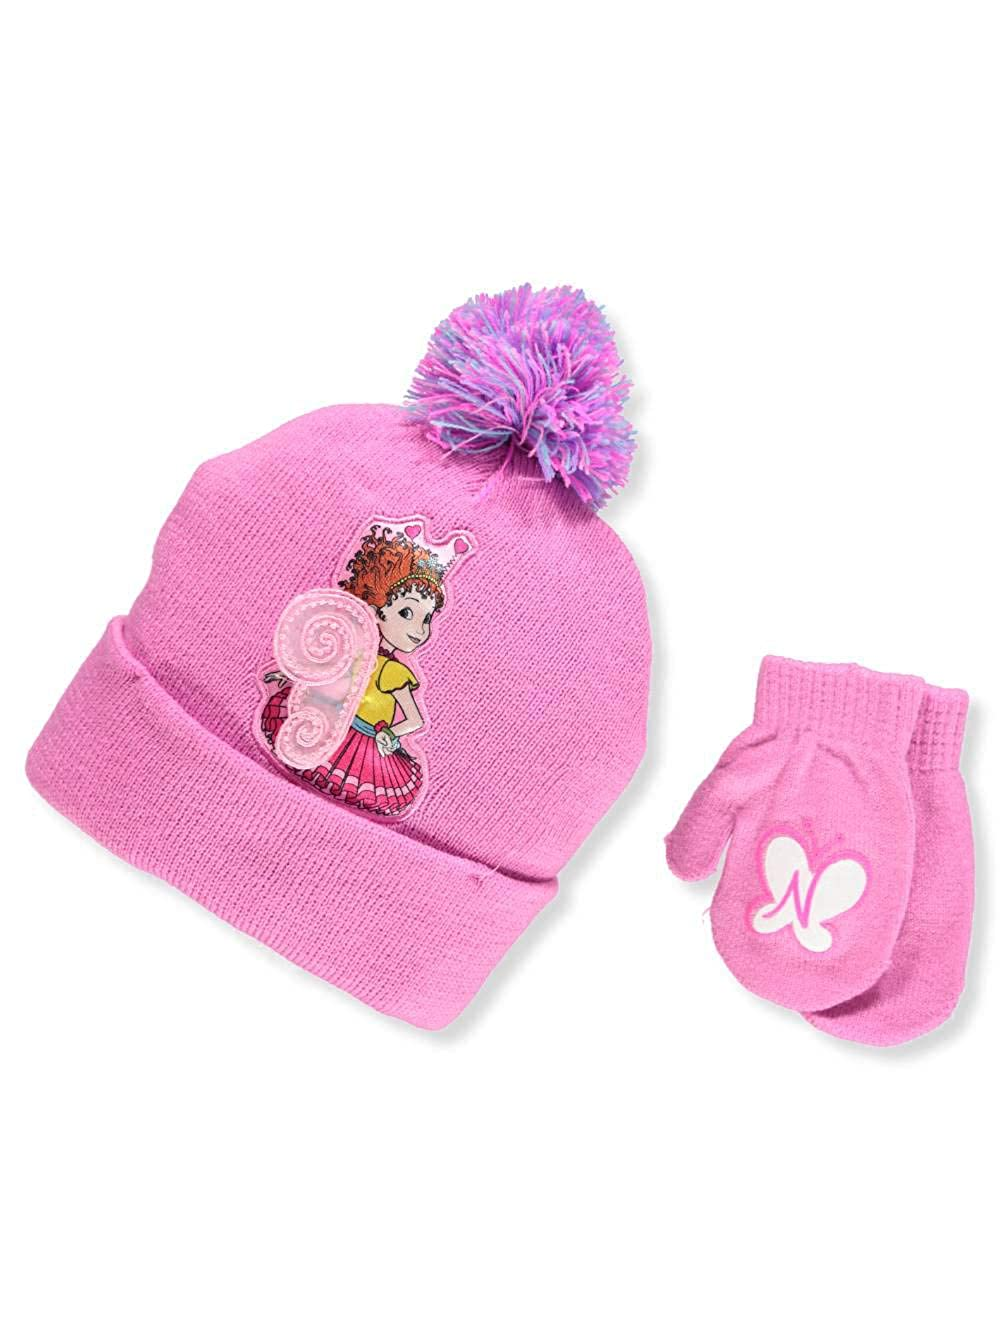 Fancy Nancy Girls Beanie Hat and Mittens Set Nickelodeon